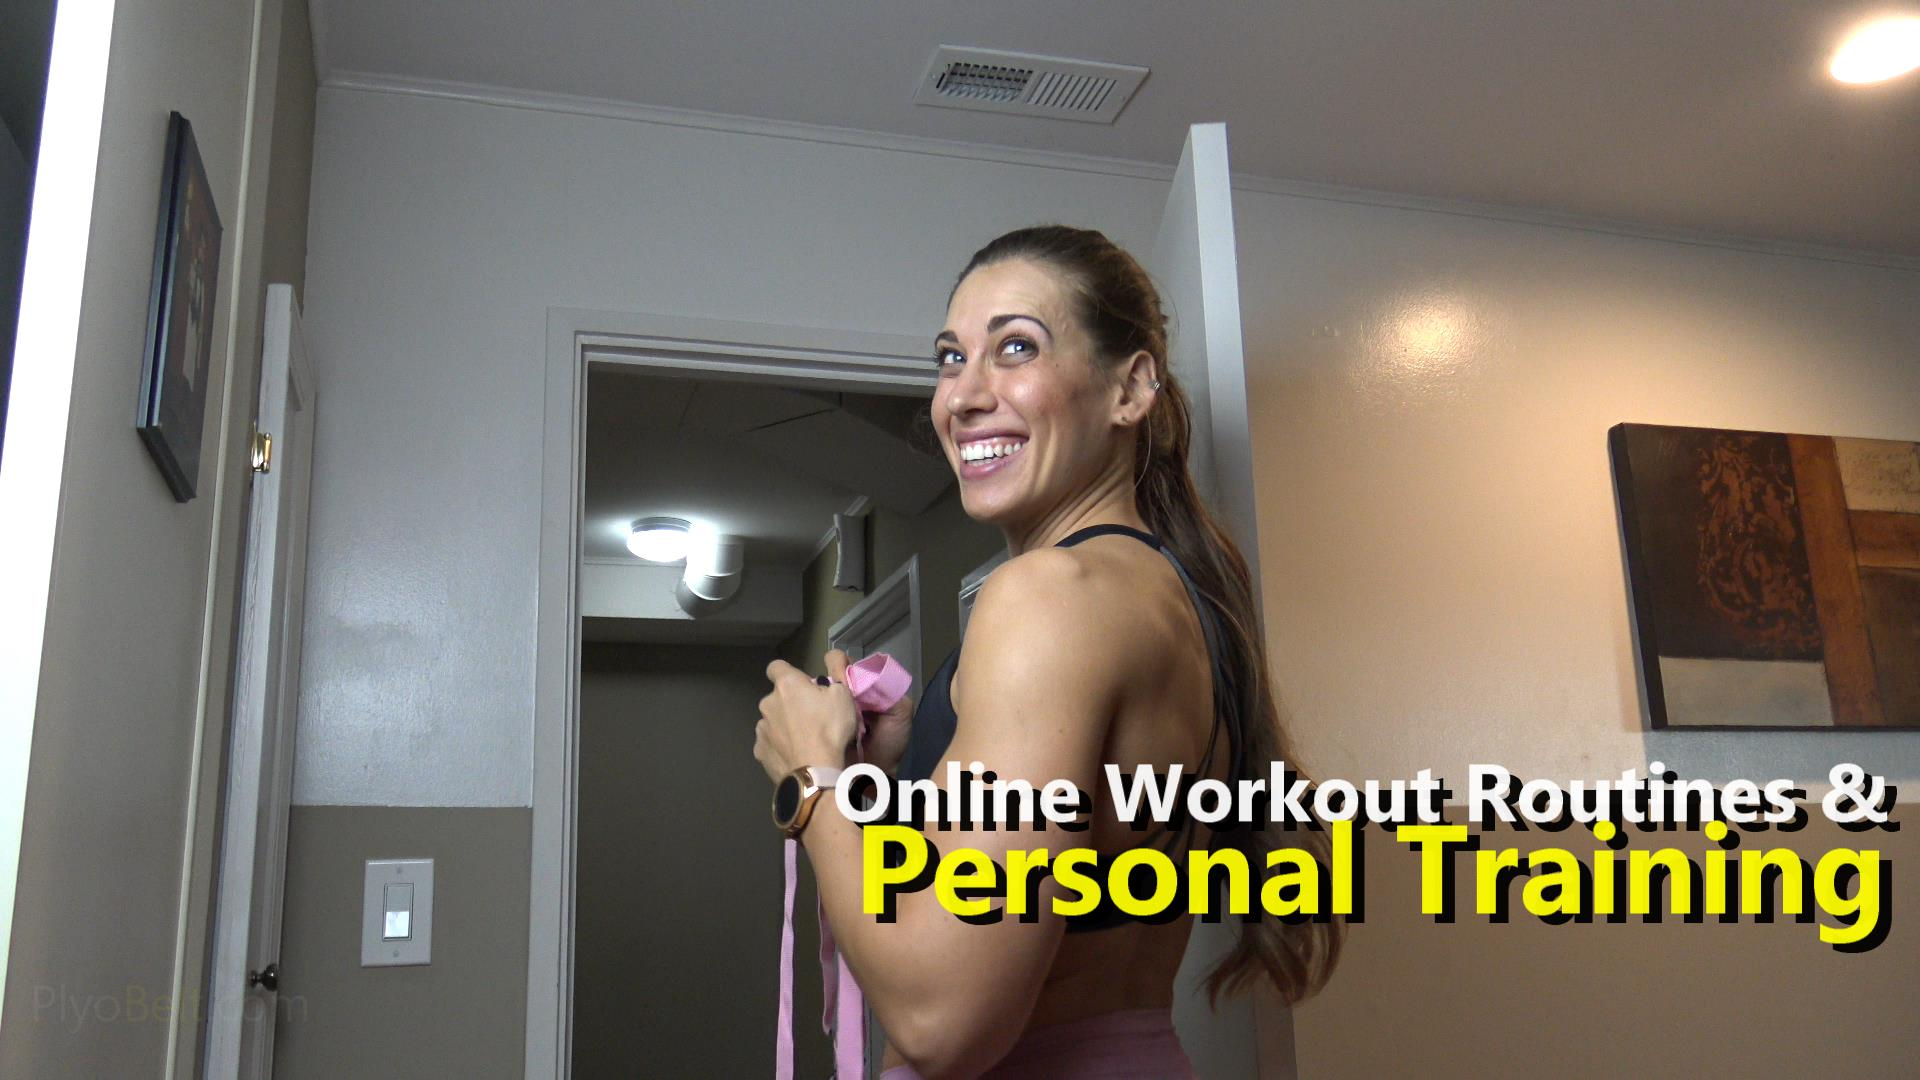 Online Workout Routines & Personal Training